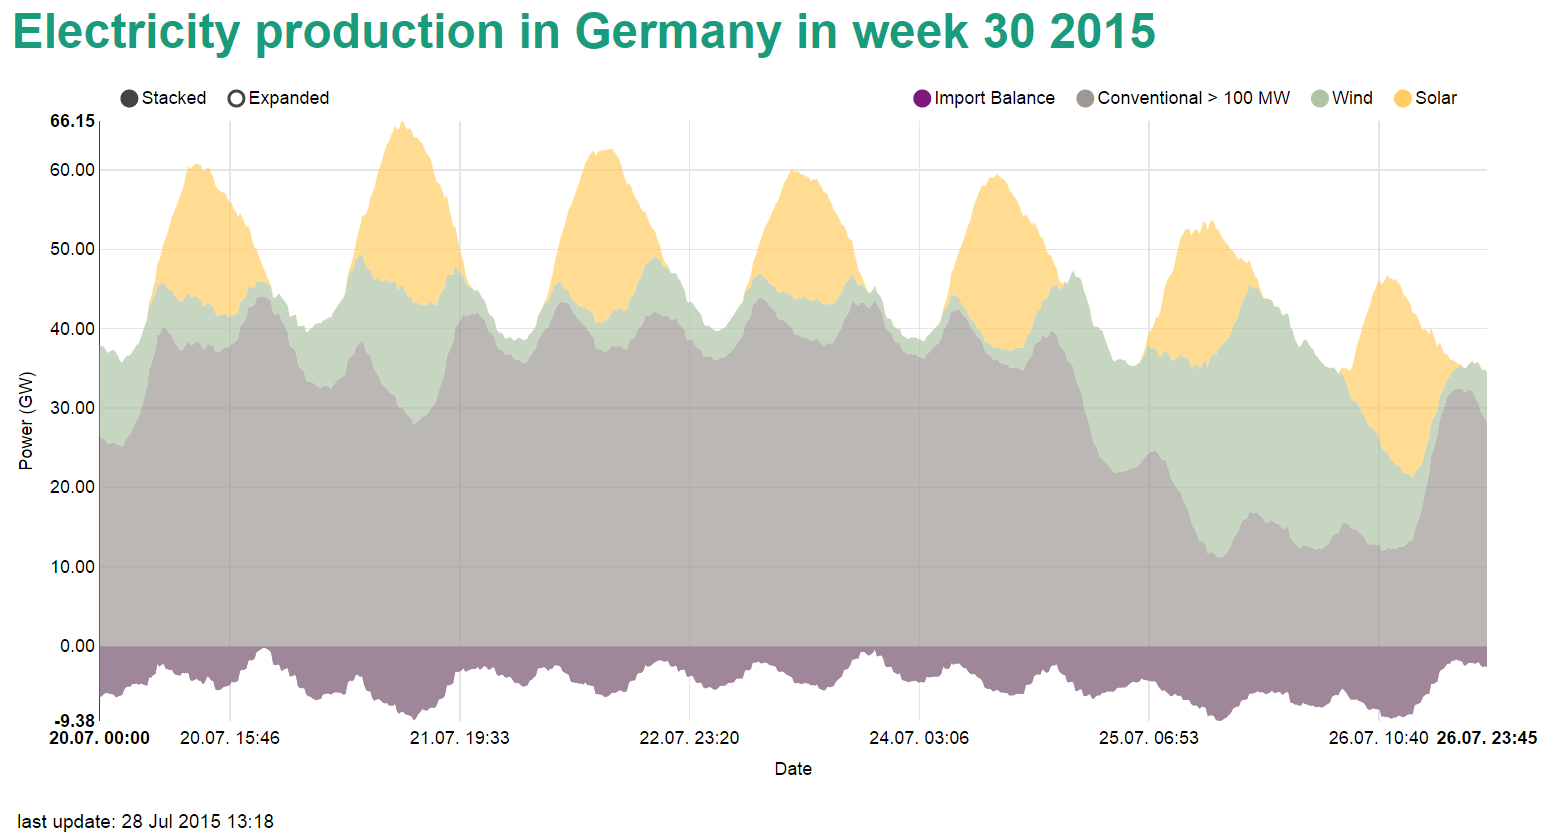 Renewable power production in Week 30 2015